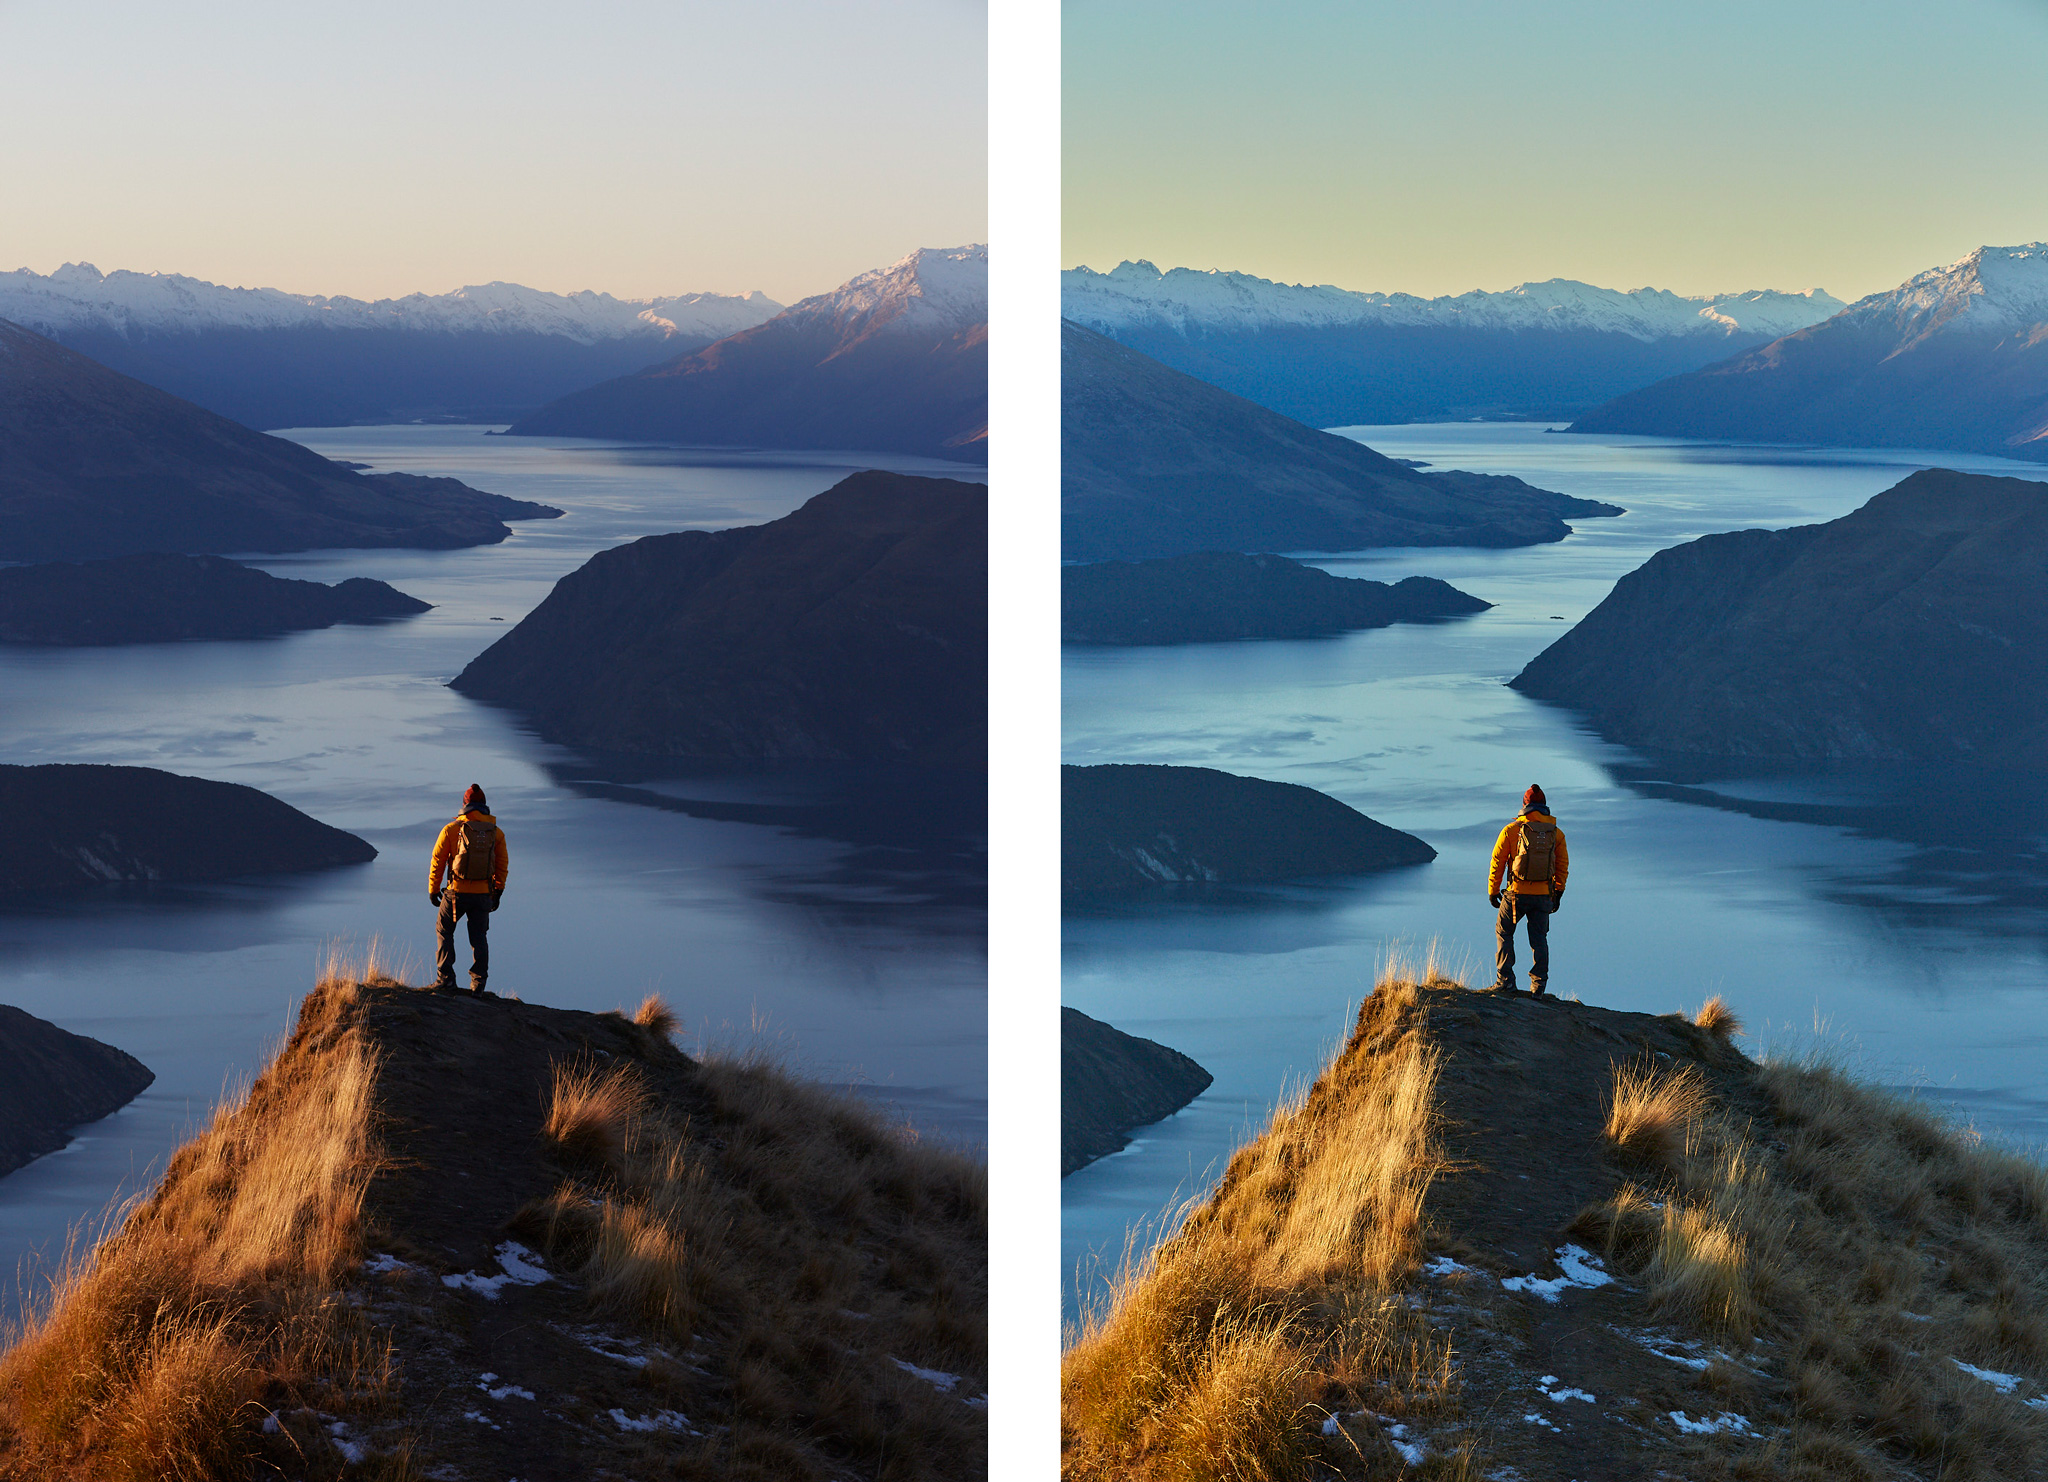 The original image out of camera on left vs the developed image in Capture One Pro on the right.